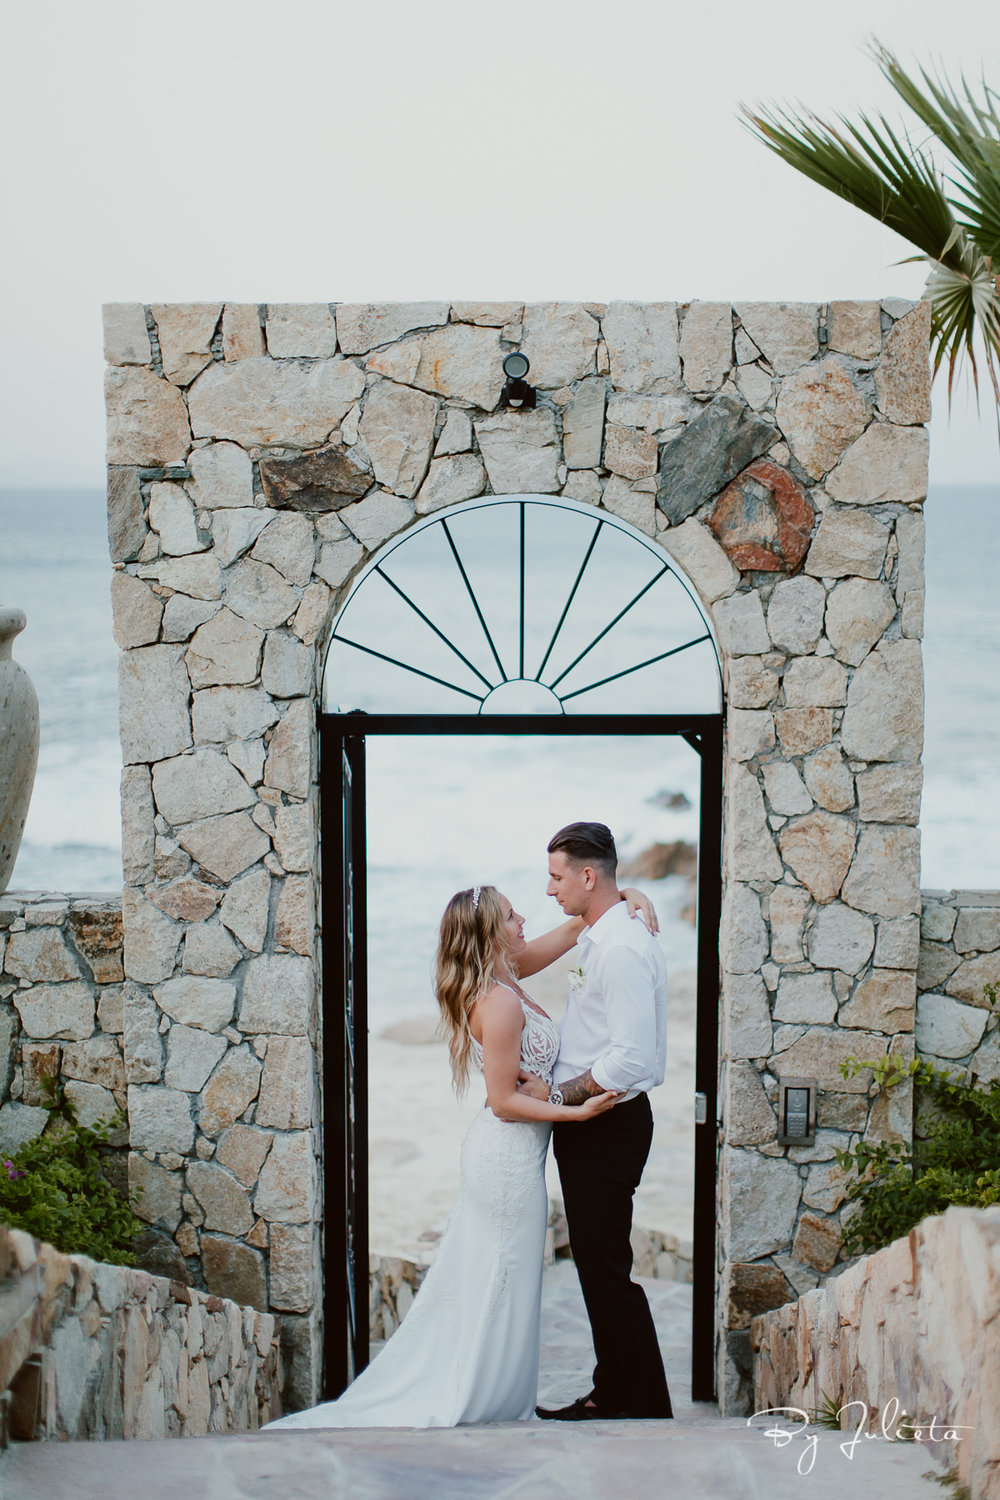 Palmilla Wedding Cabo. M+M. Julieta Amezcua Photography. (219 of 235).jpg